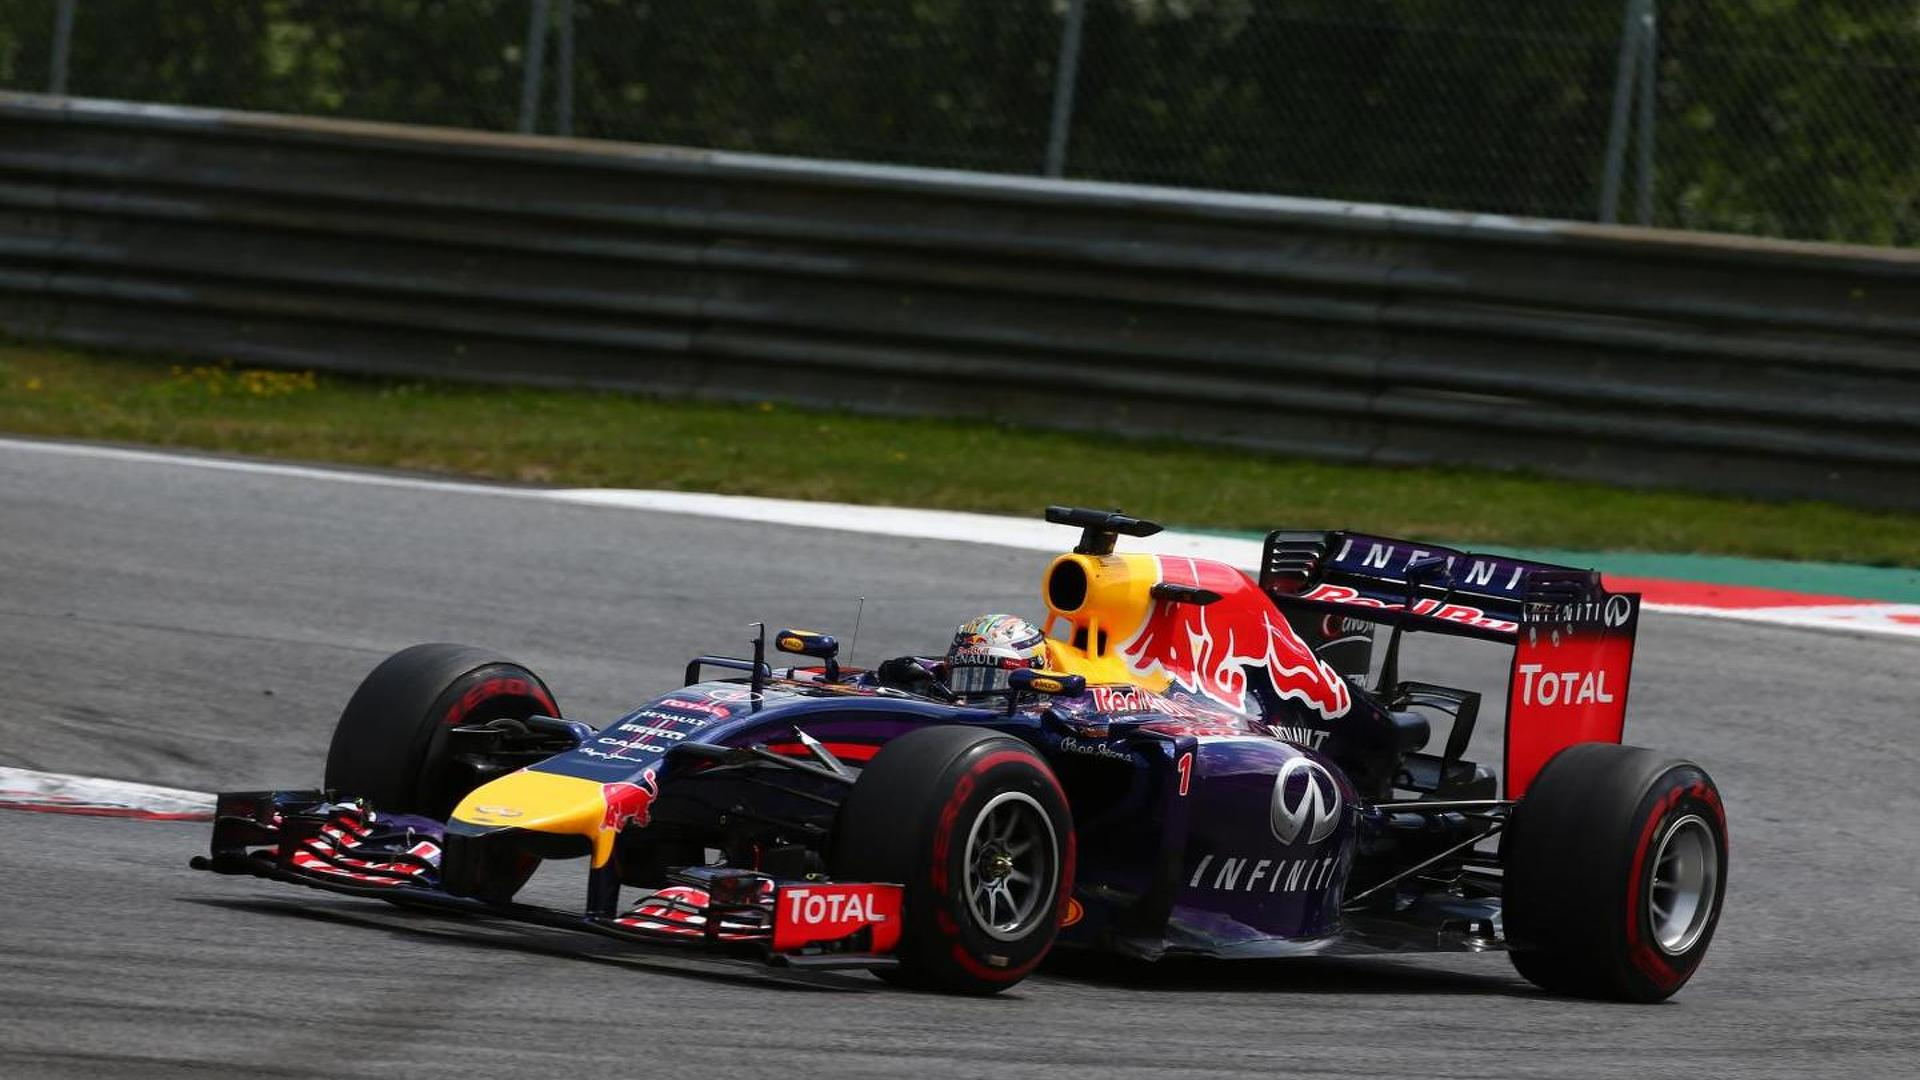 No home win target for Vettel in 2014